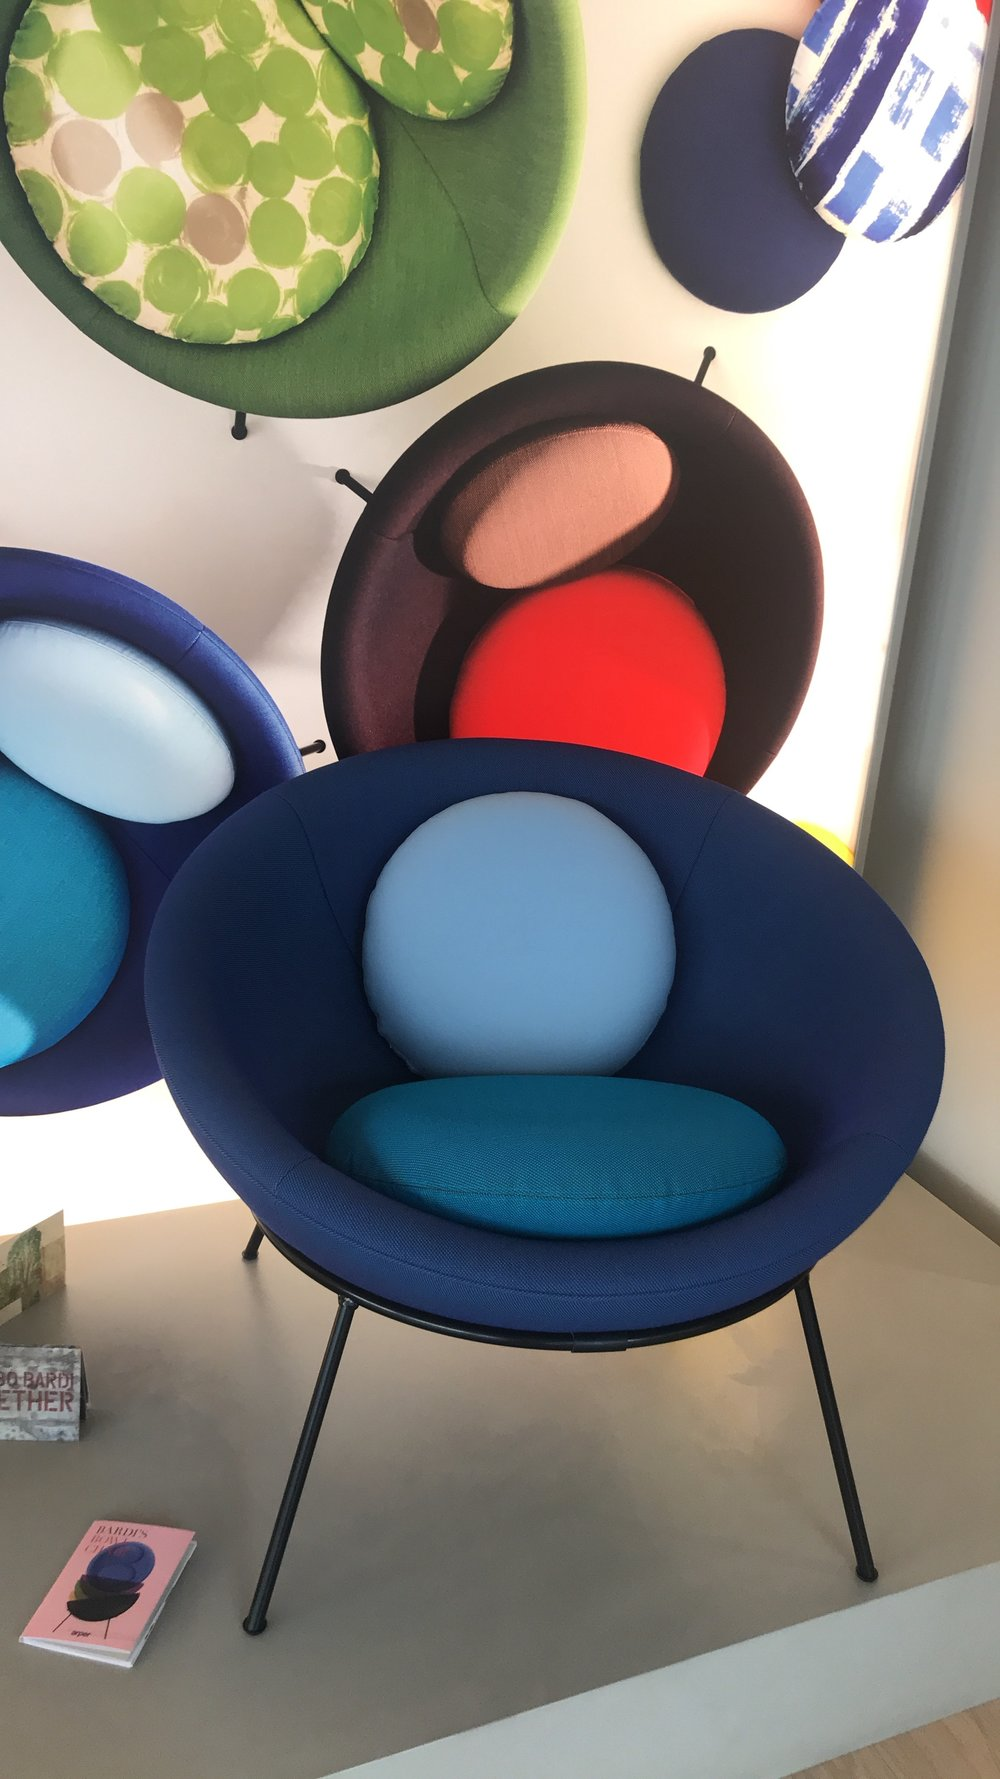 The gorgeous Bardi Bowl Chair featured in Arper's showroom